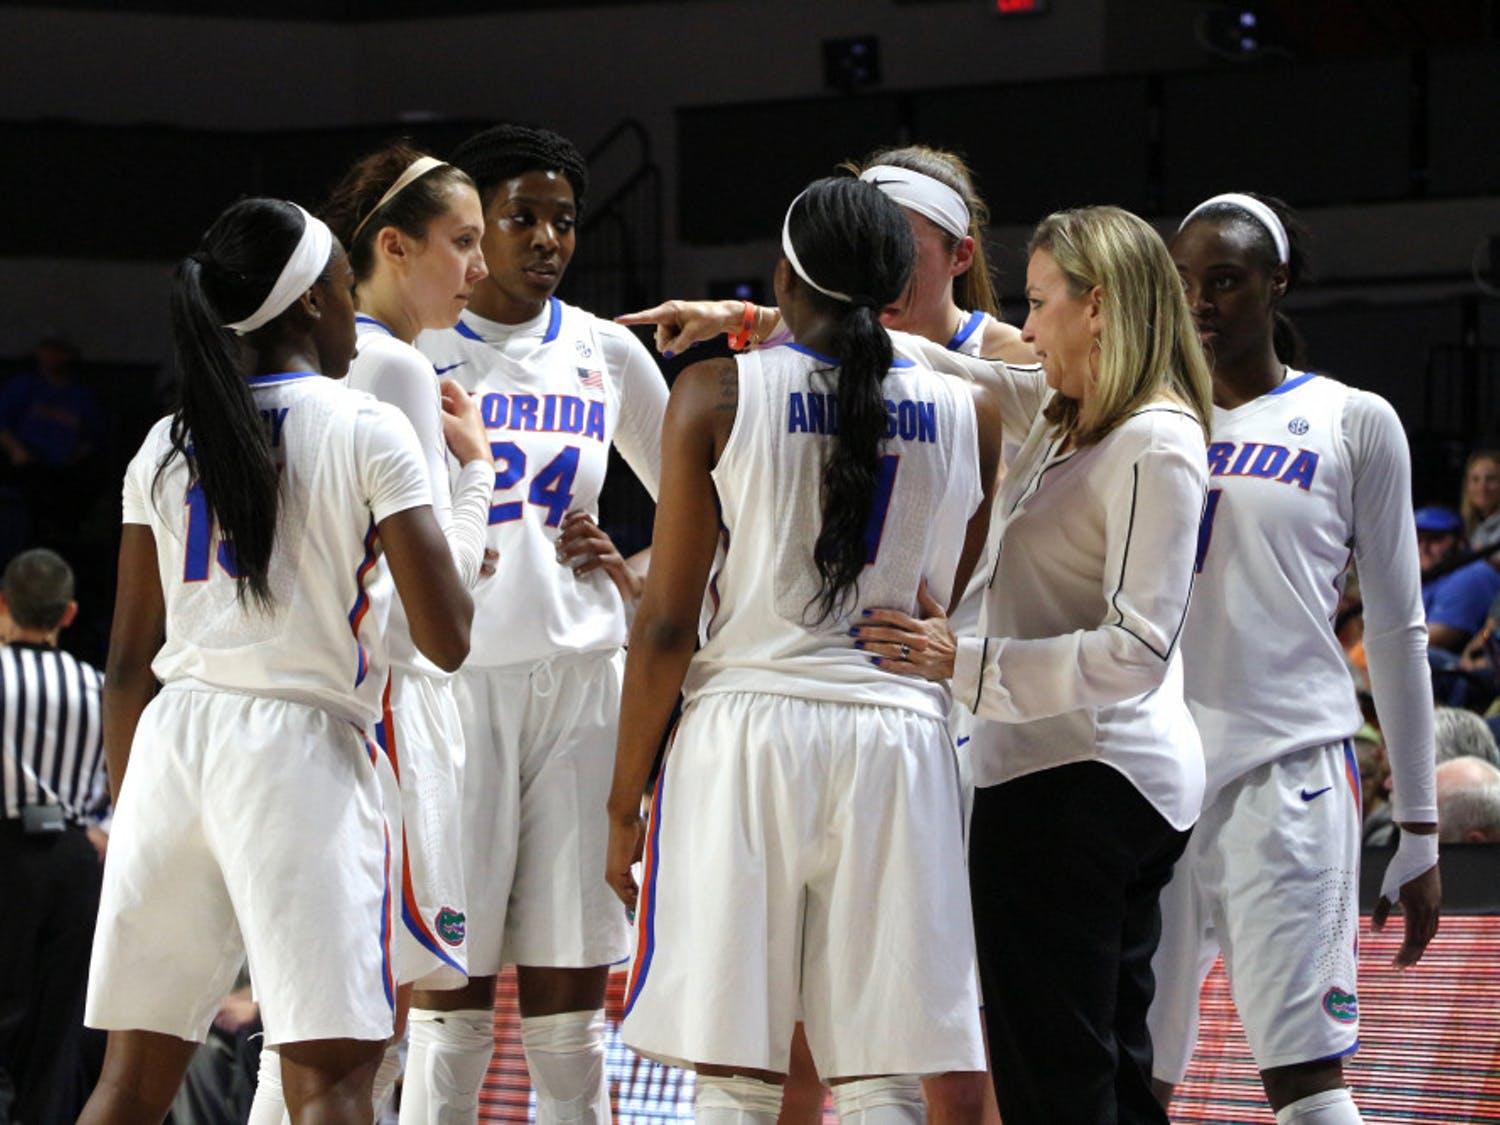 With just five days until their season opener, Florida's new women's basketball coach Cameron Newbauer said the Gators are focusing on putting themselves first and getting better each day.